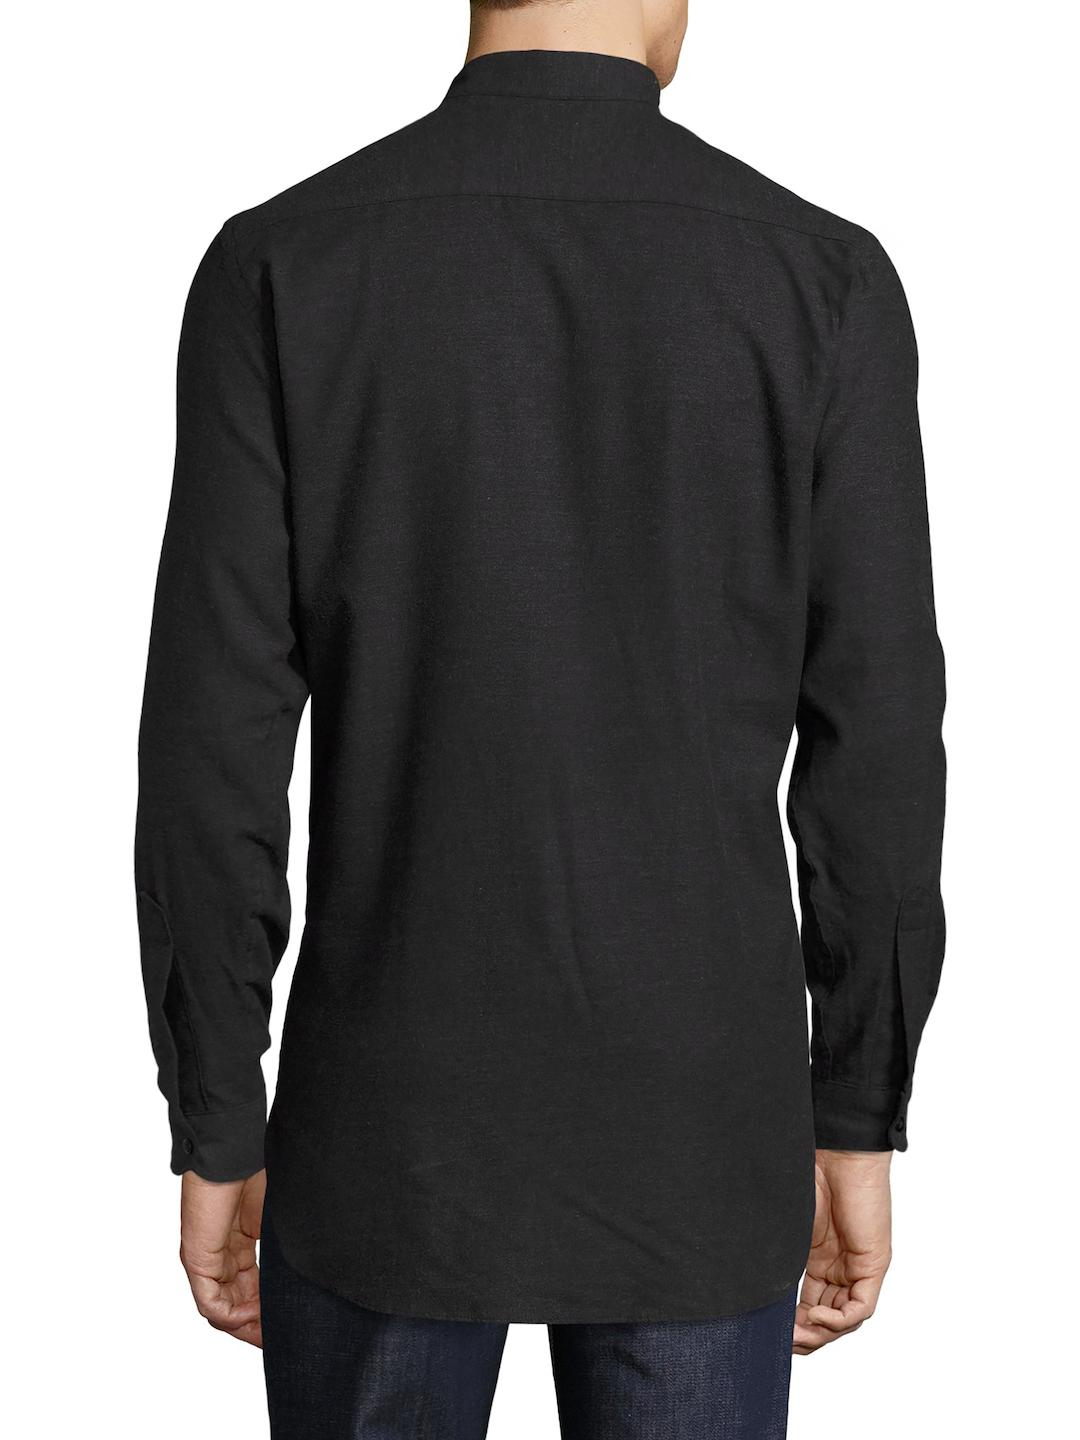 Naked & Famous Cotton Long Brushed Twill Sportshirt in Black for Men